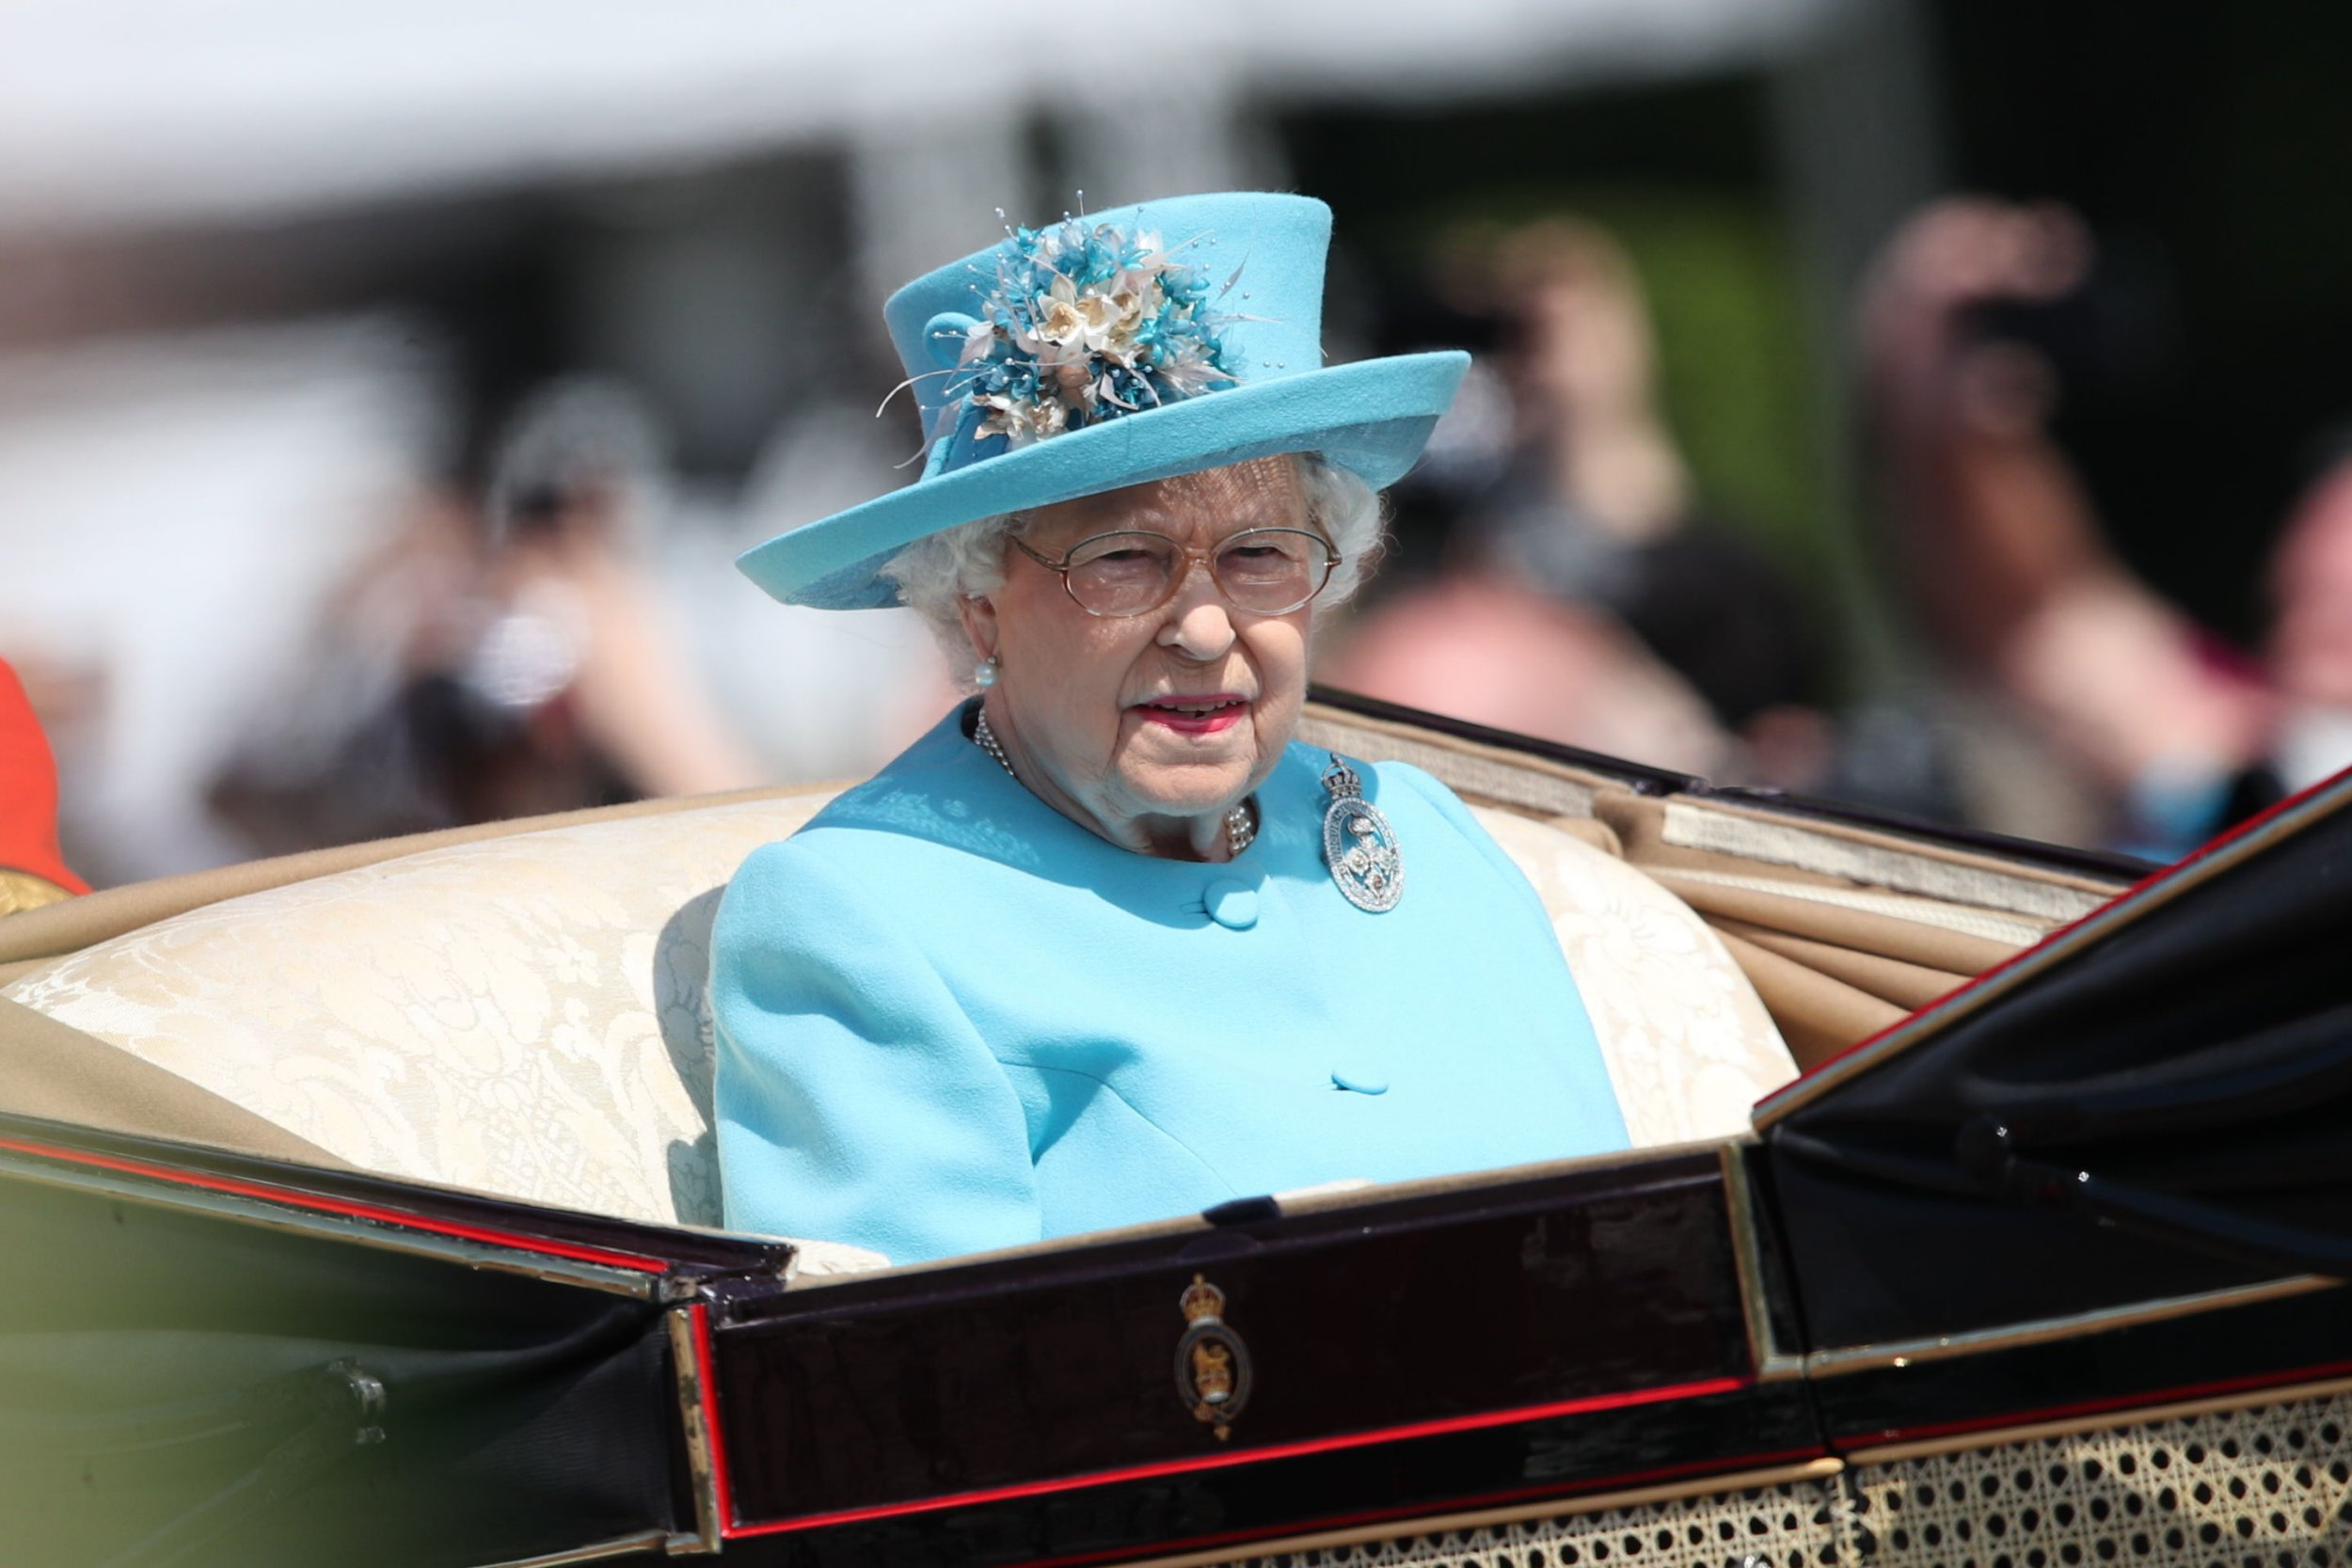 Queen Elizabeth II on the way to Horse Guards Parade, ahead of the Trooping the Colour ceremony, as she celebrates her official birthday. PRESS ASSOCIATION Photo. Picture date: Saturday June 9, 2018. See PA story ROYAL Trooping. Photo credit should read: Yui Mok/PA Wire